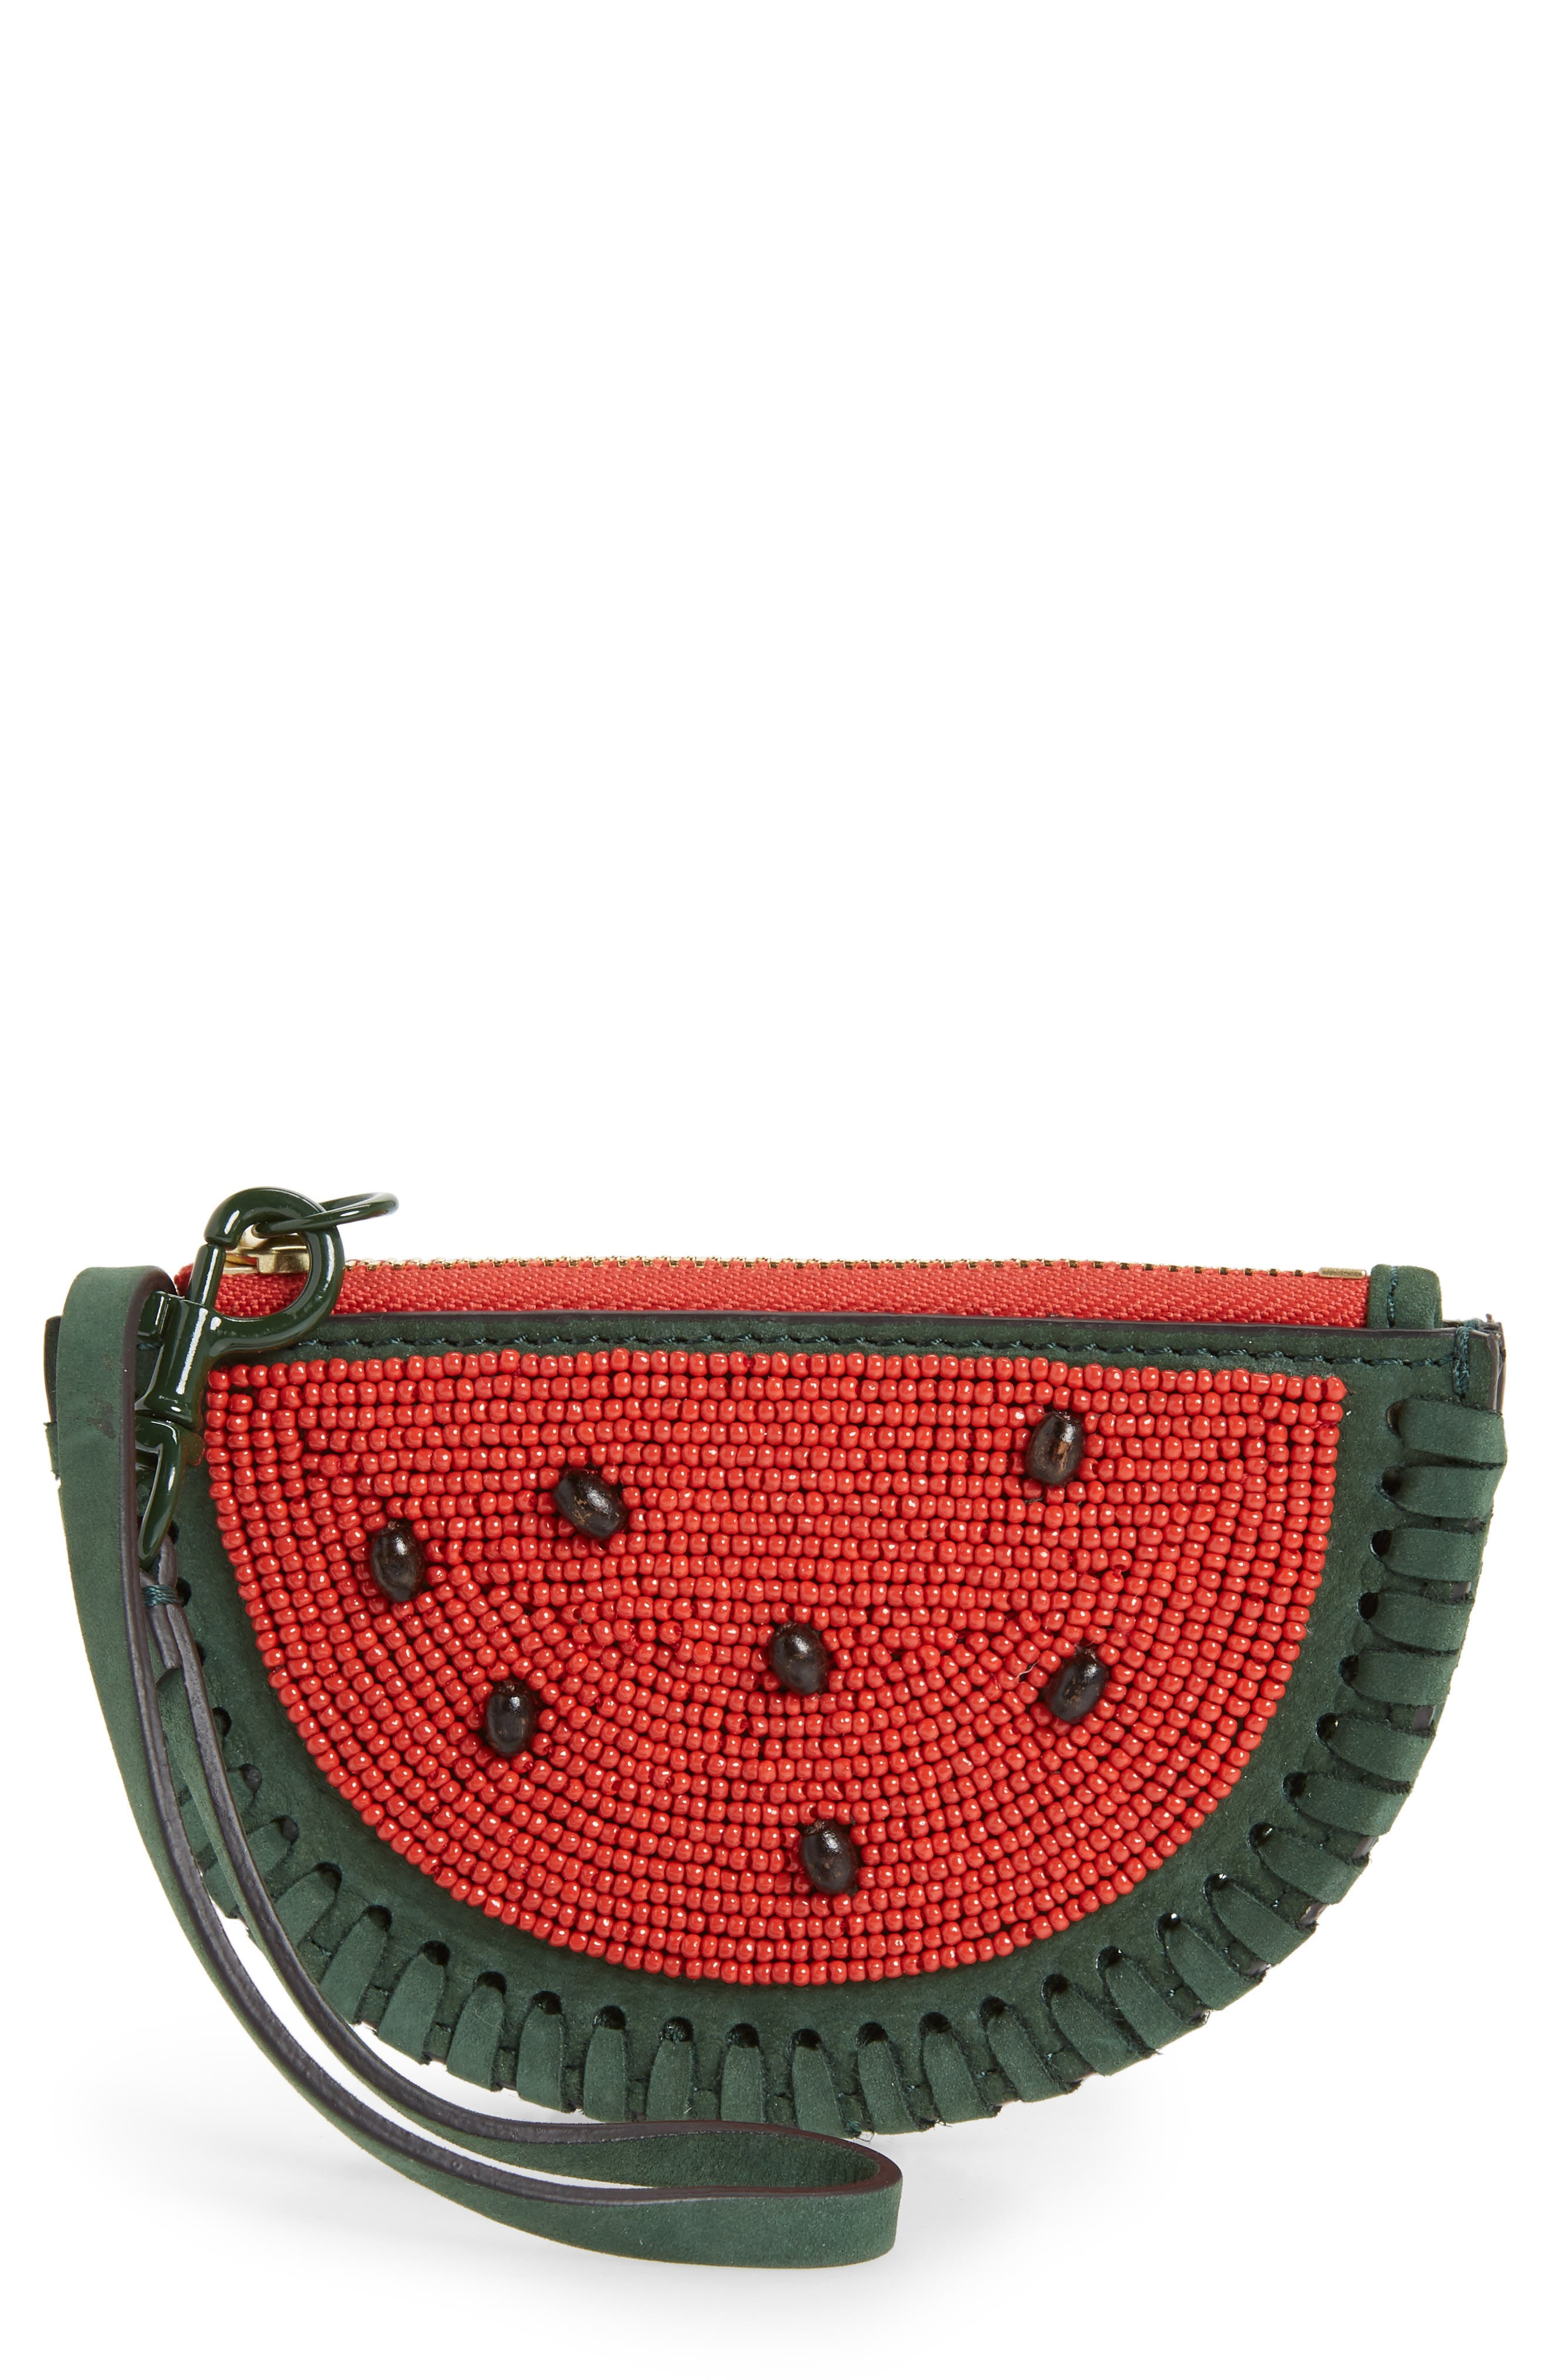 Tory Burch Watermelon Leather Coin Pouch